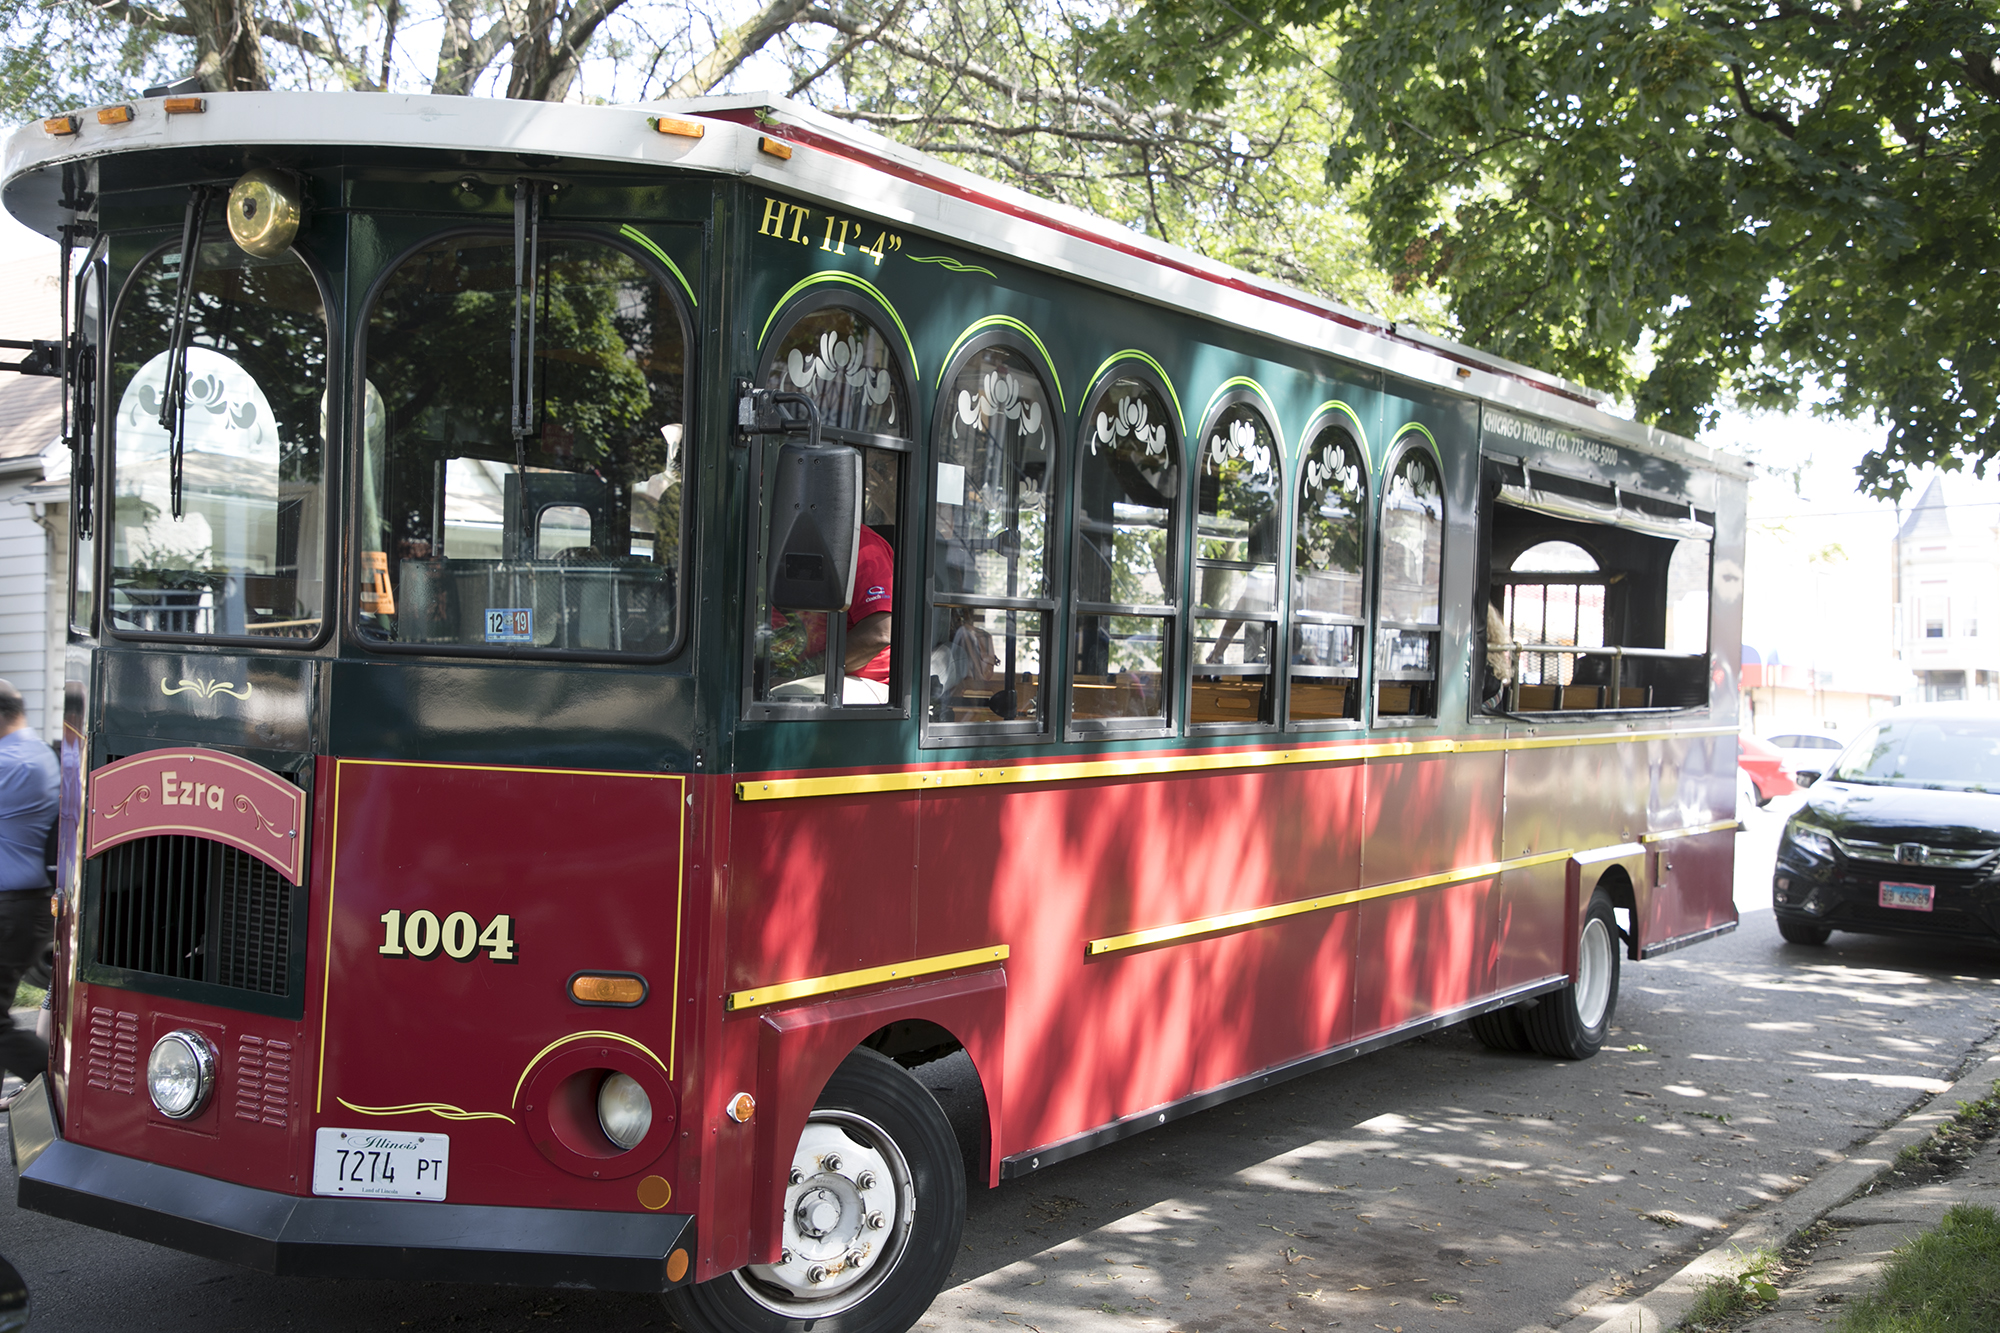 The trolley took guests through the Logan Square, Hermosa and Belmont Cragin neighborhoods.